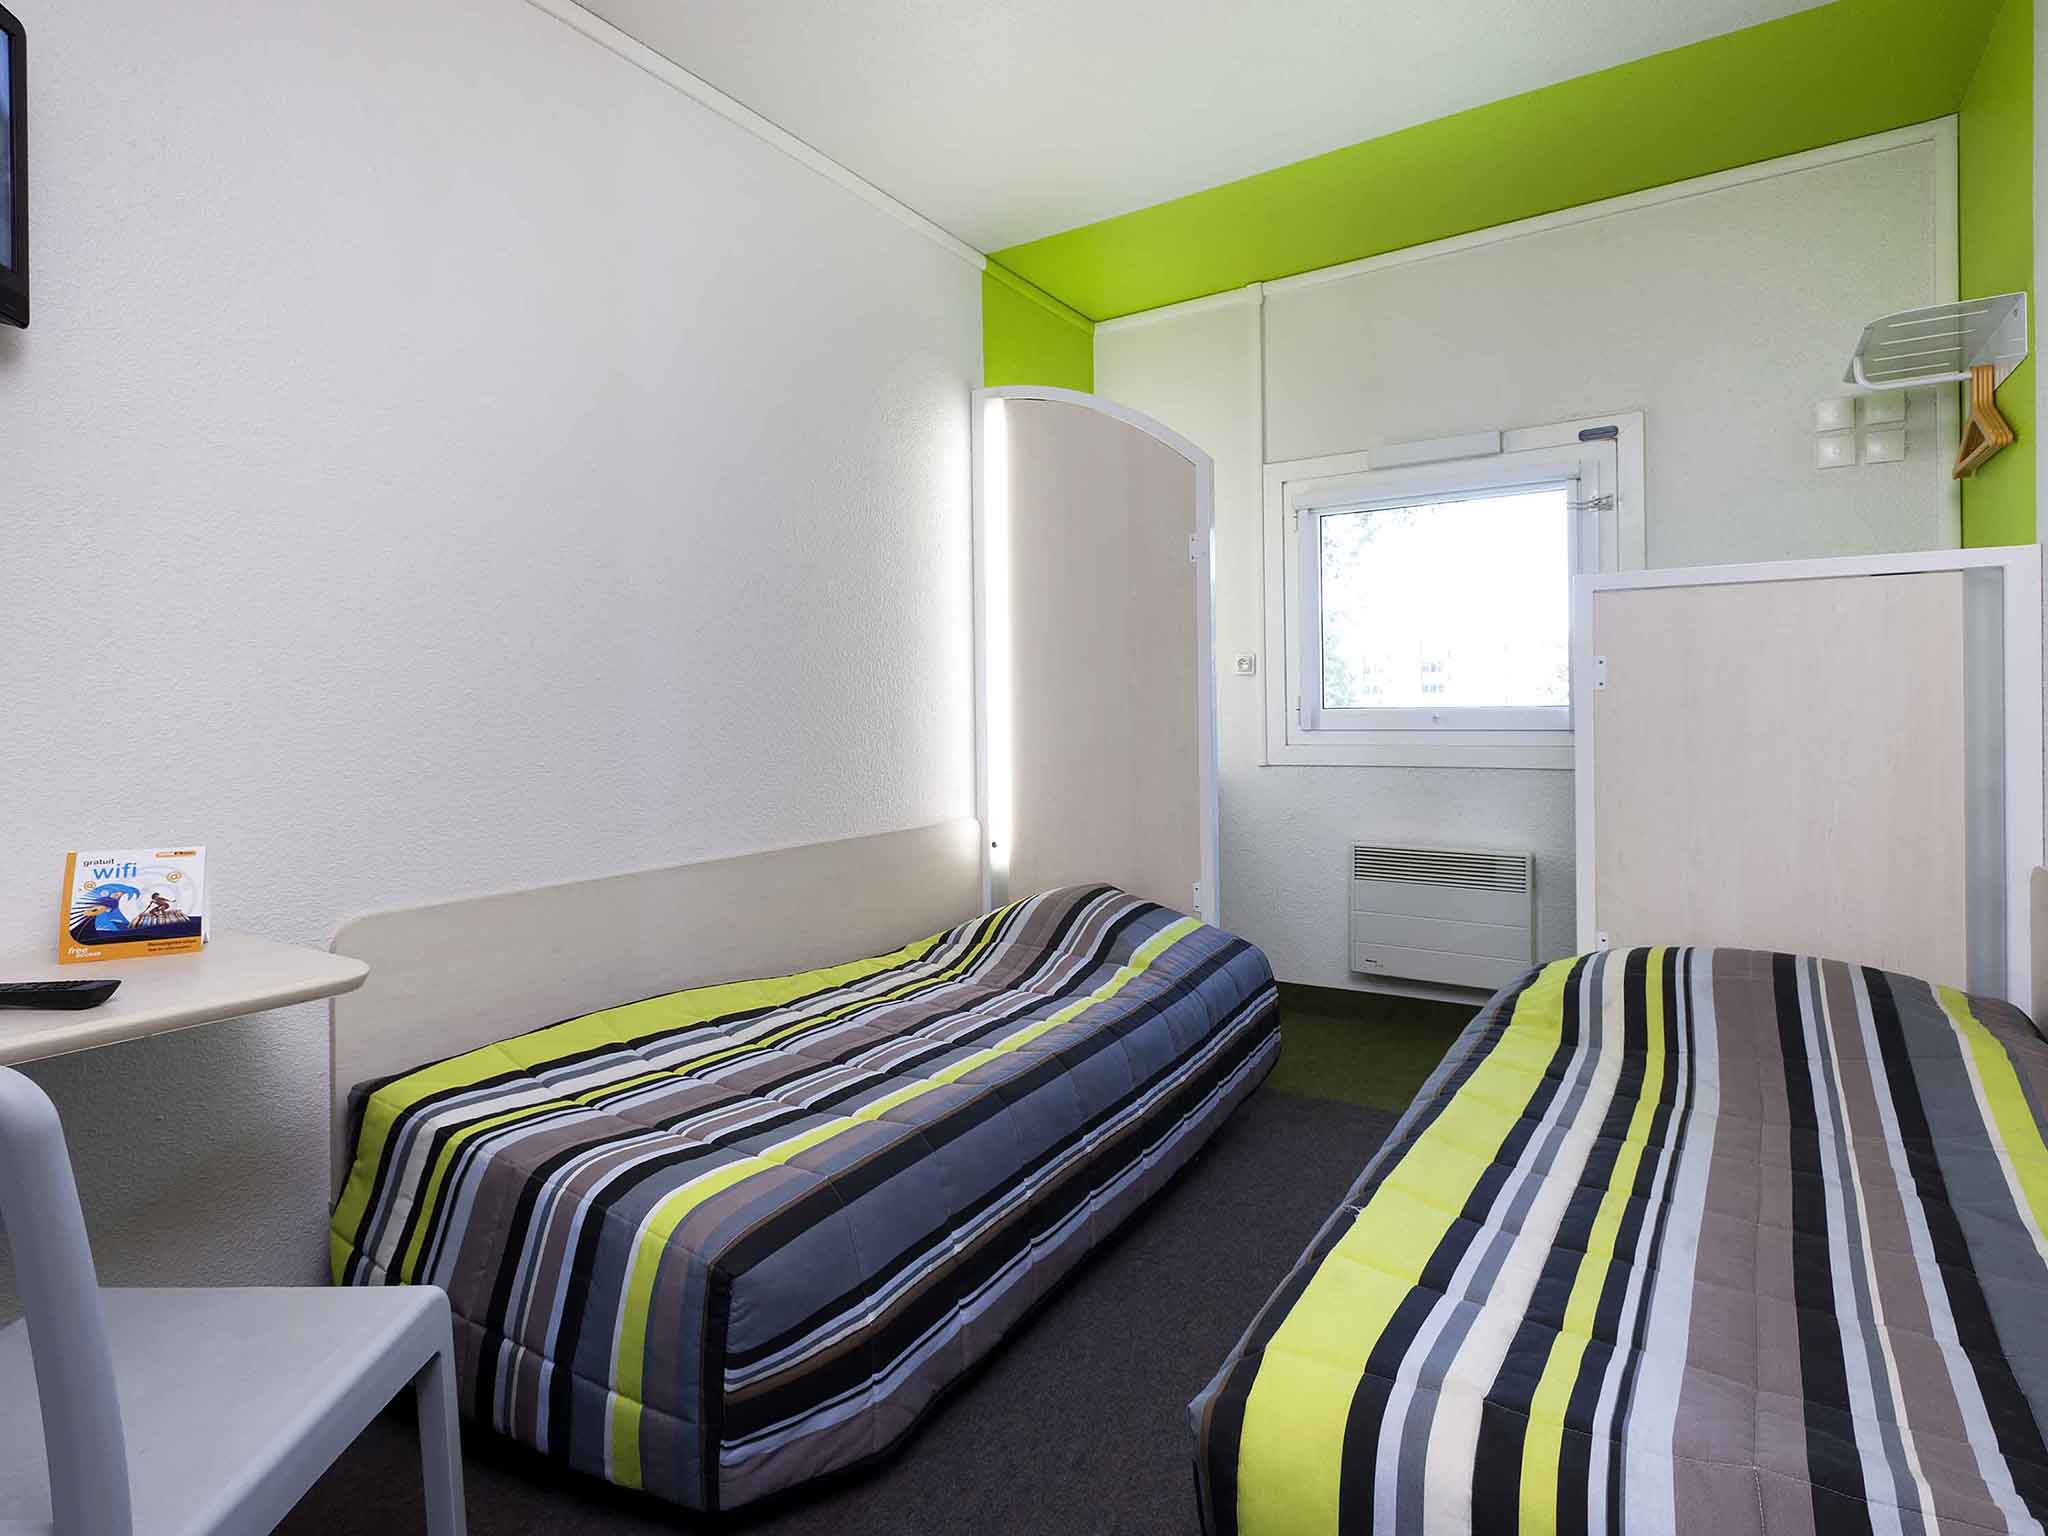 Hotel – hotelF1 Valenciennes Douchy-les-Mines